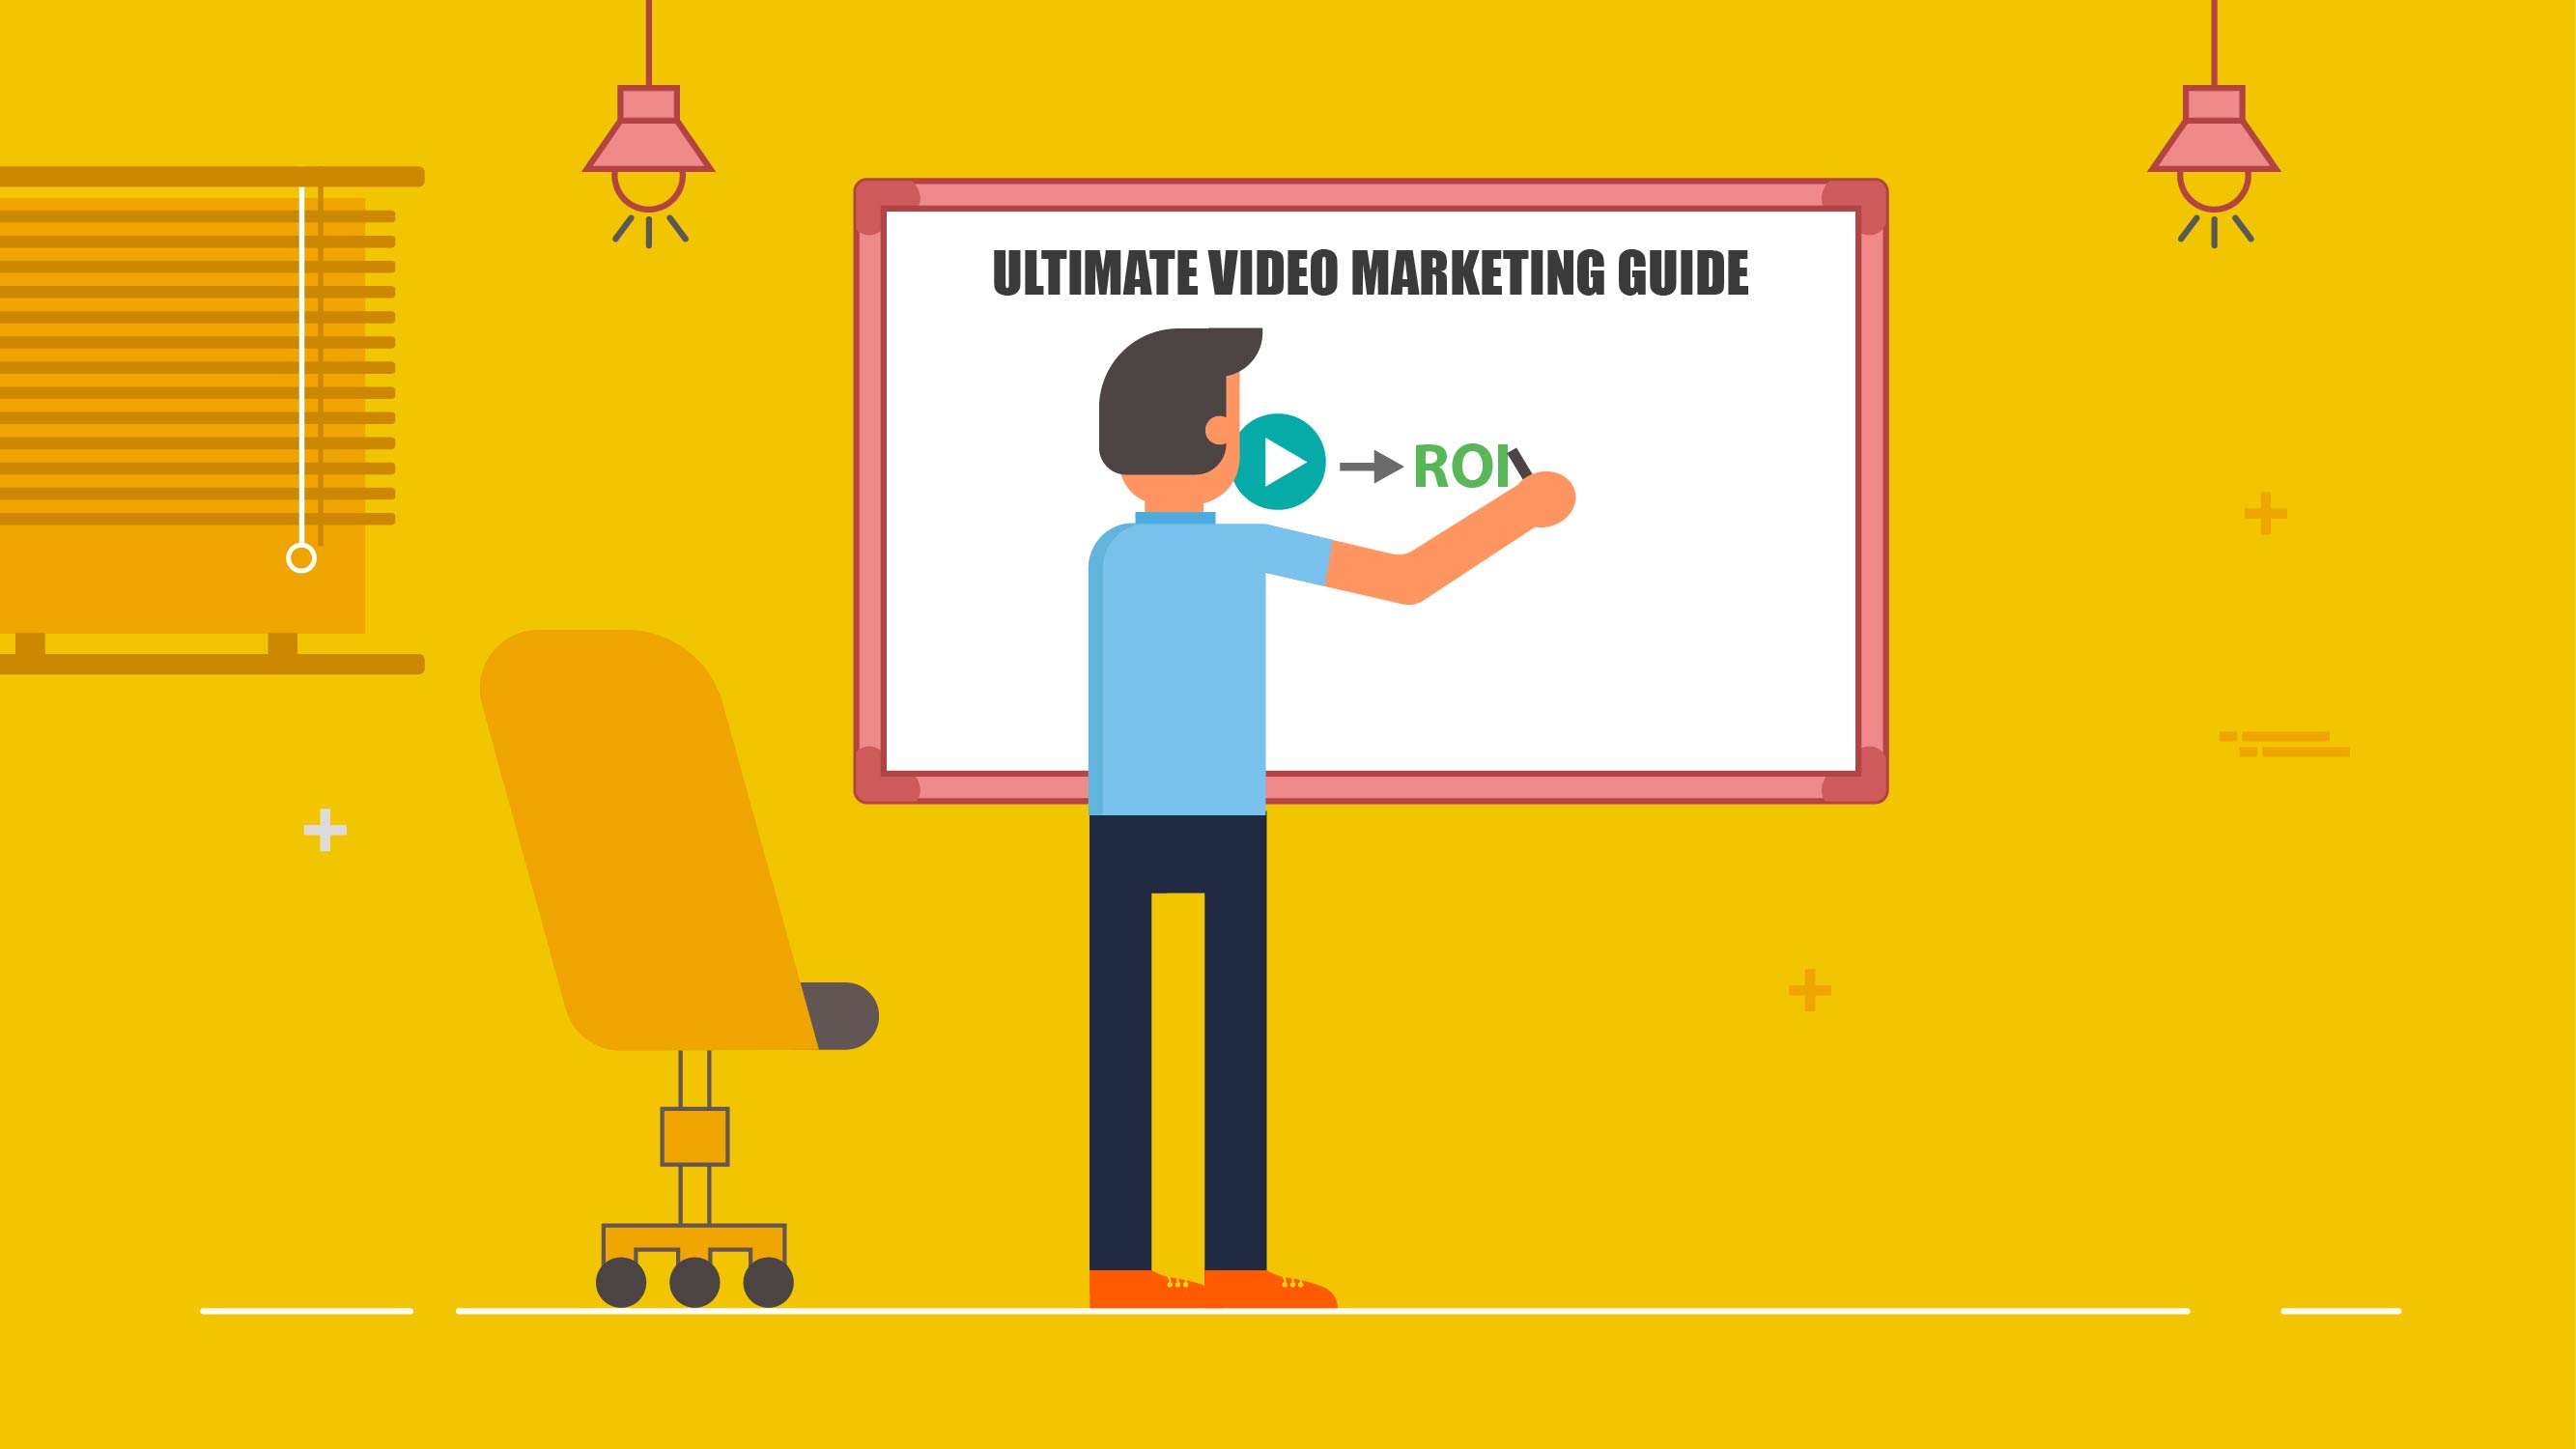 Ultimate Video Marketing Guide Crackitt